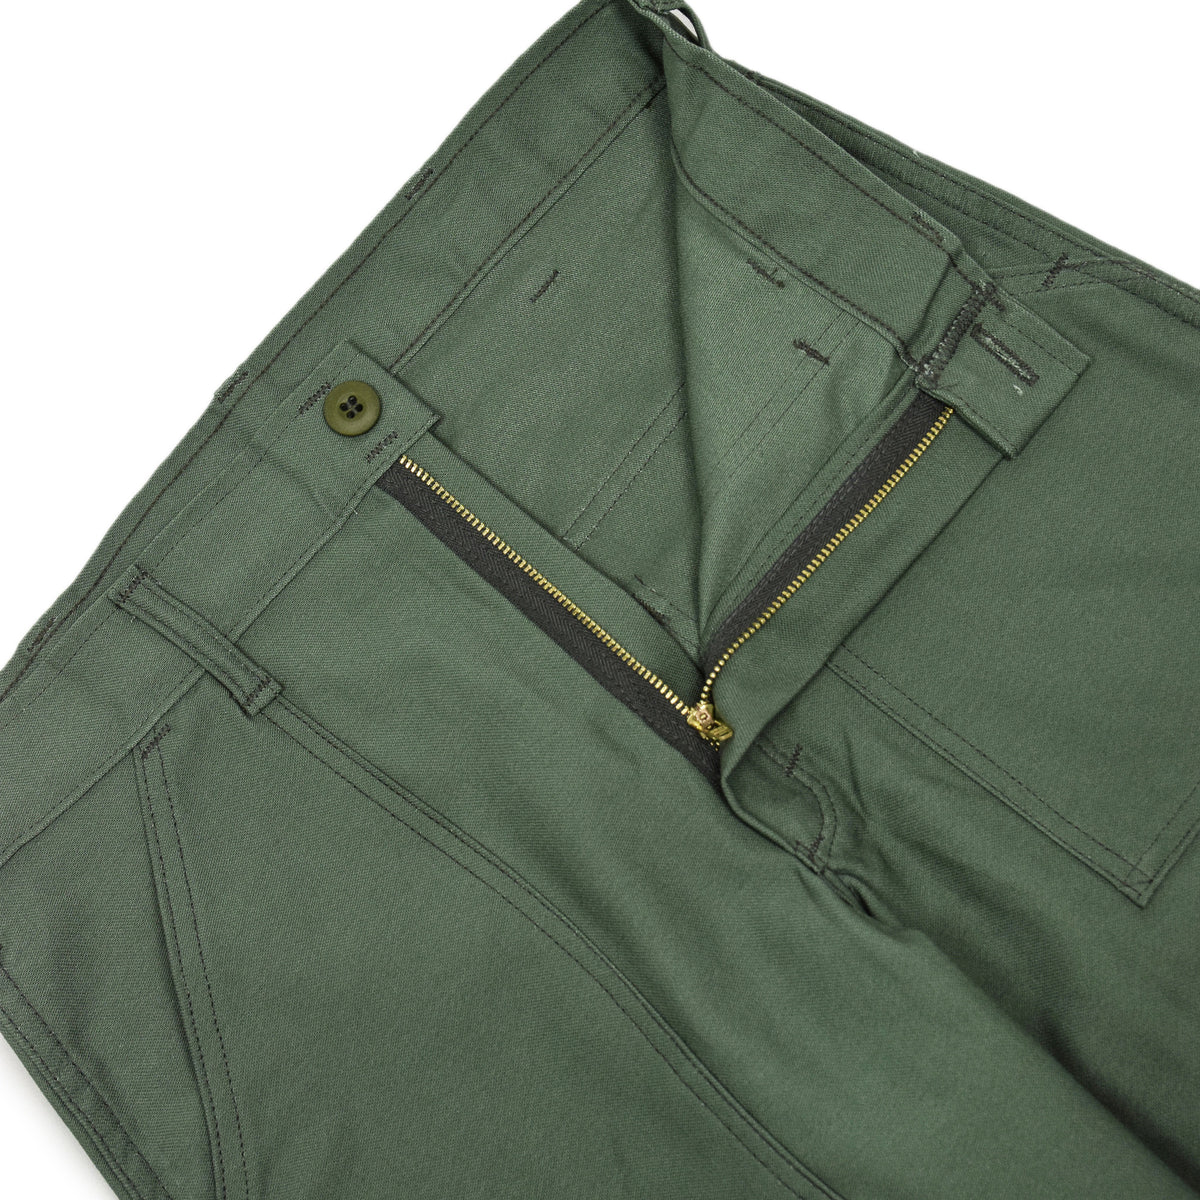 Stan Ray OG Loose Fatigue Trouser Olive Sateen Made in USA fly